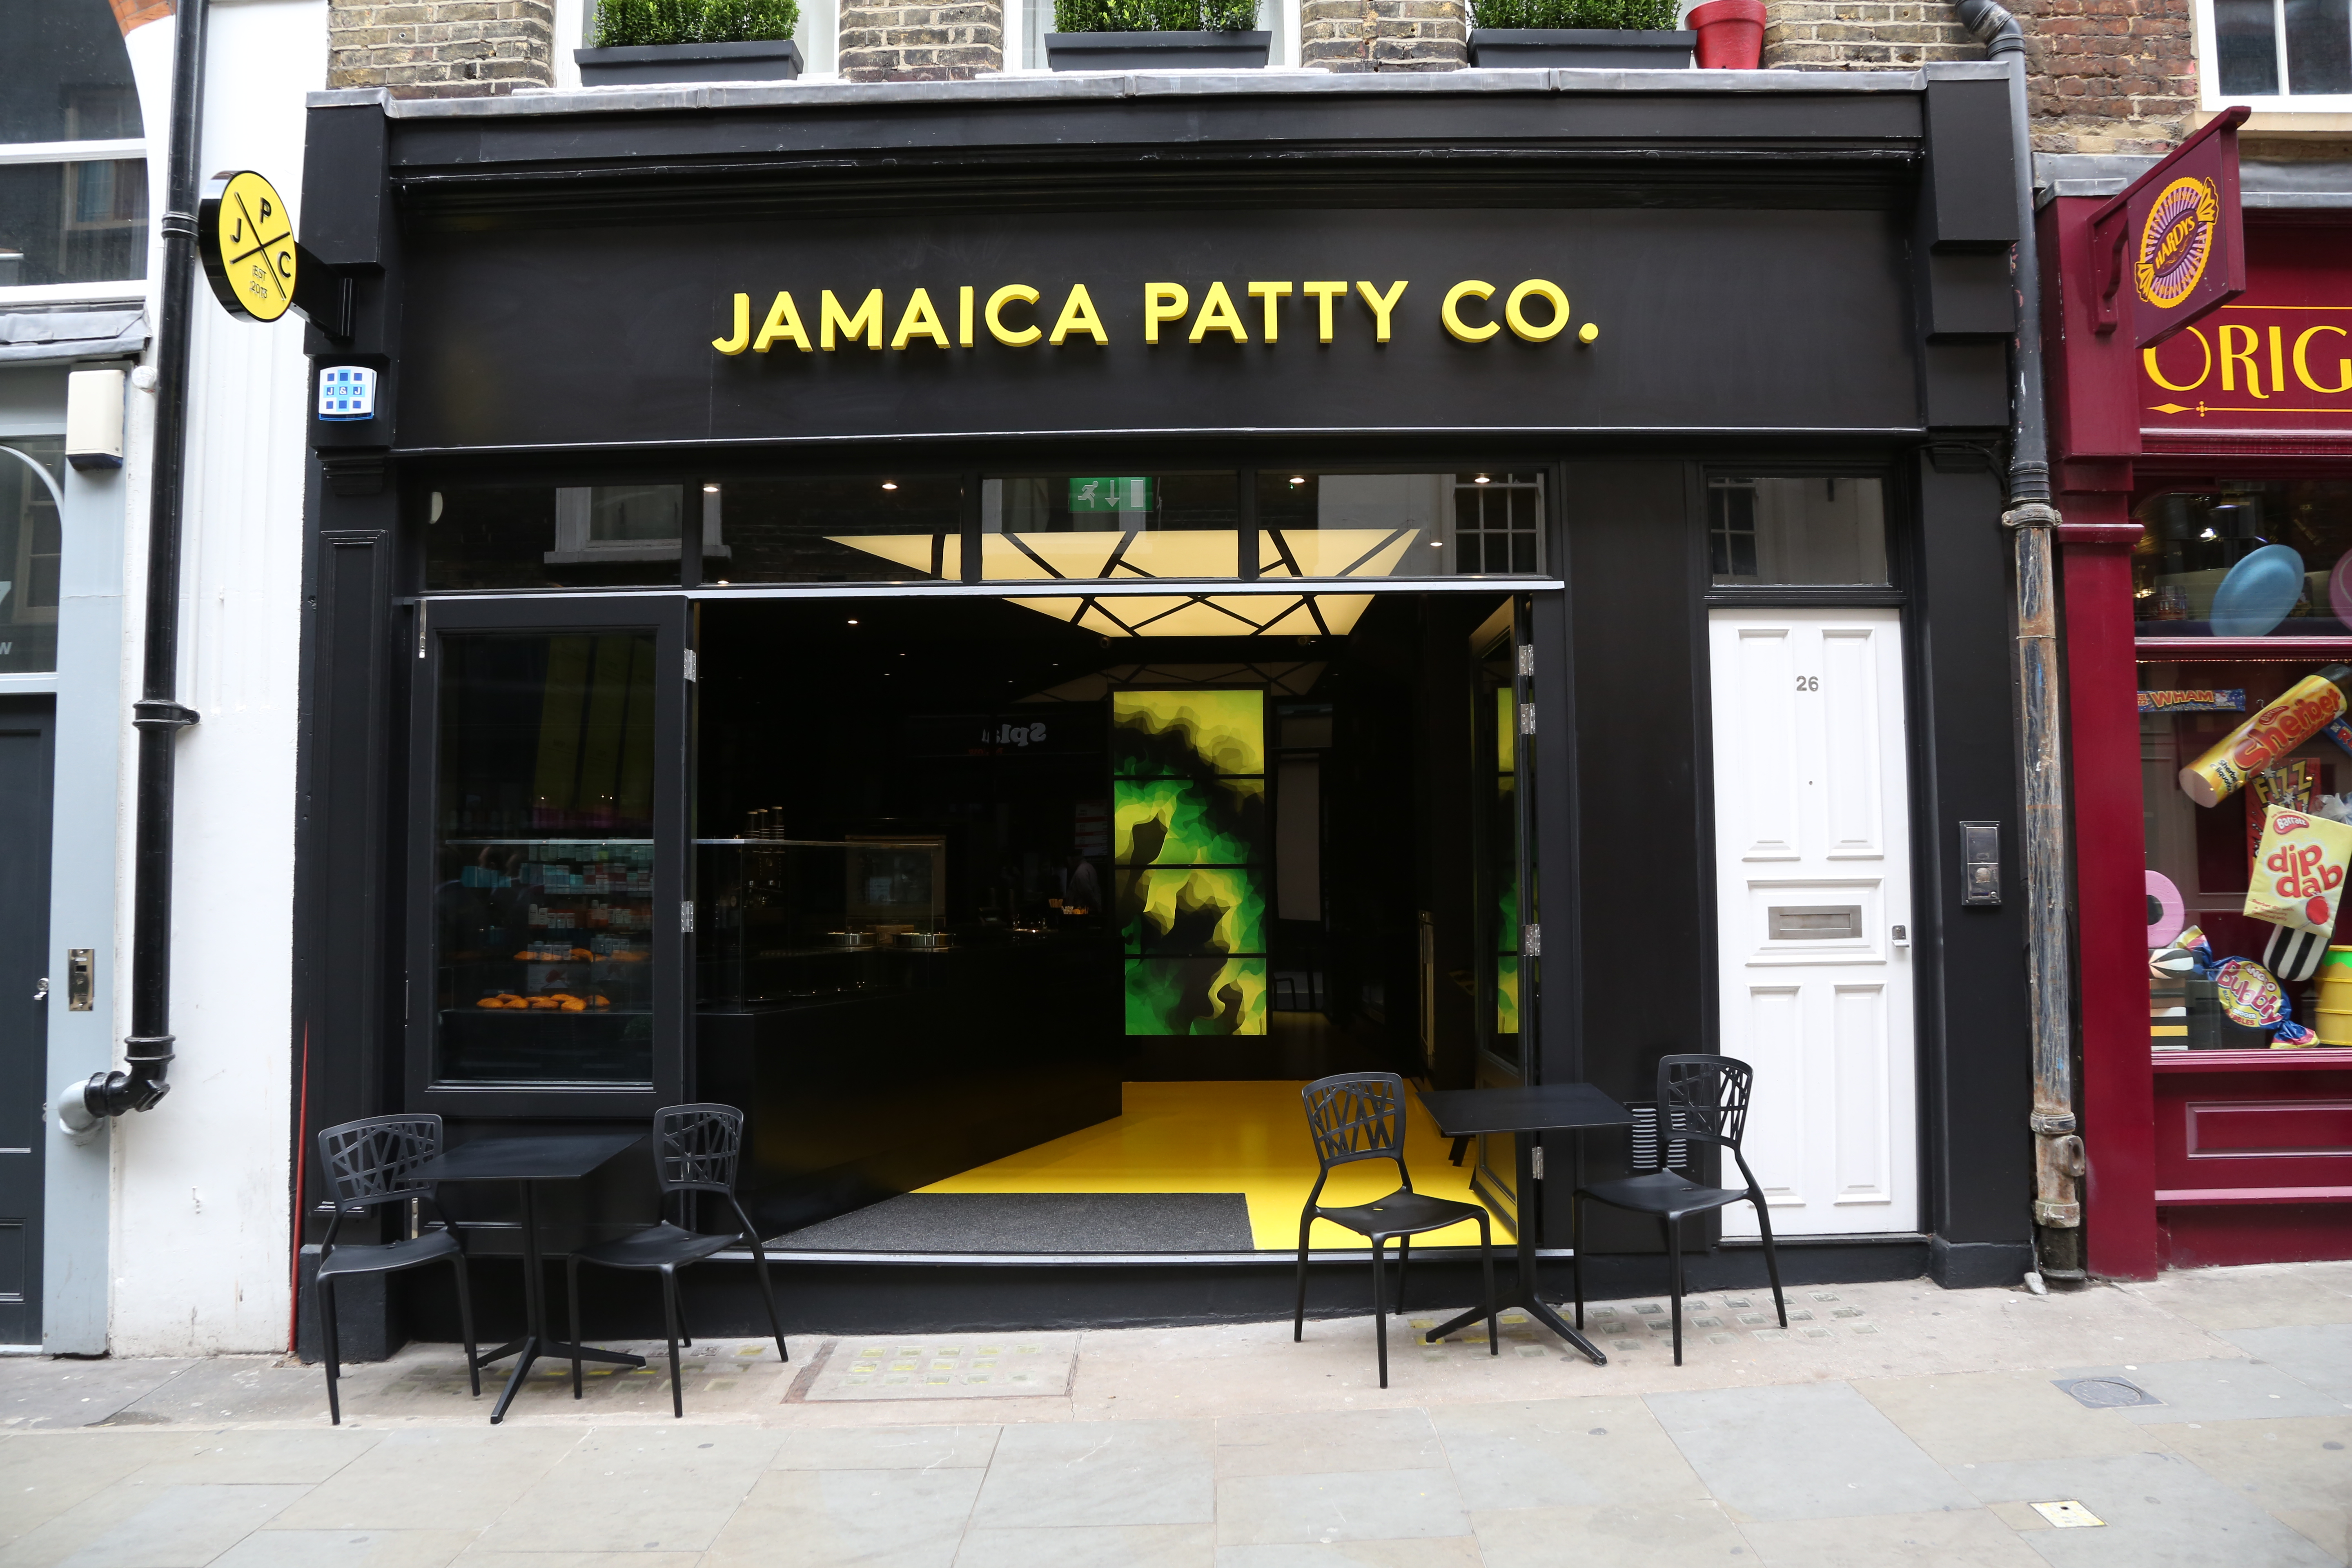 Jamaica Patty Co. Launch Venue in London